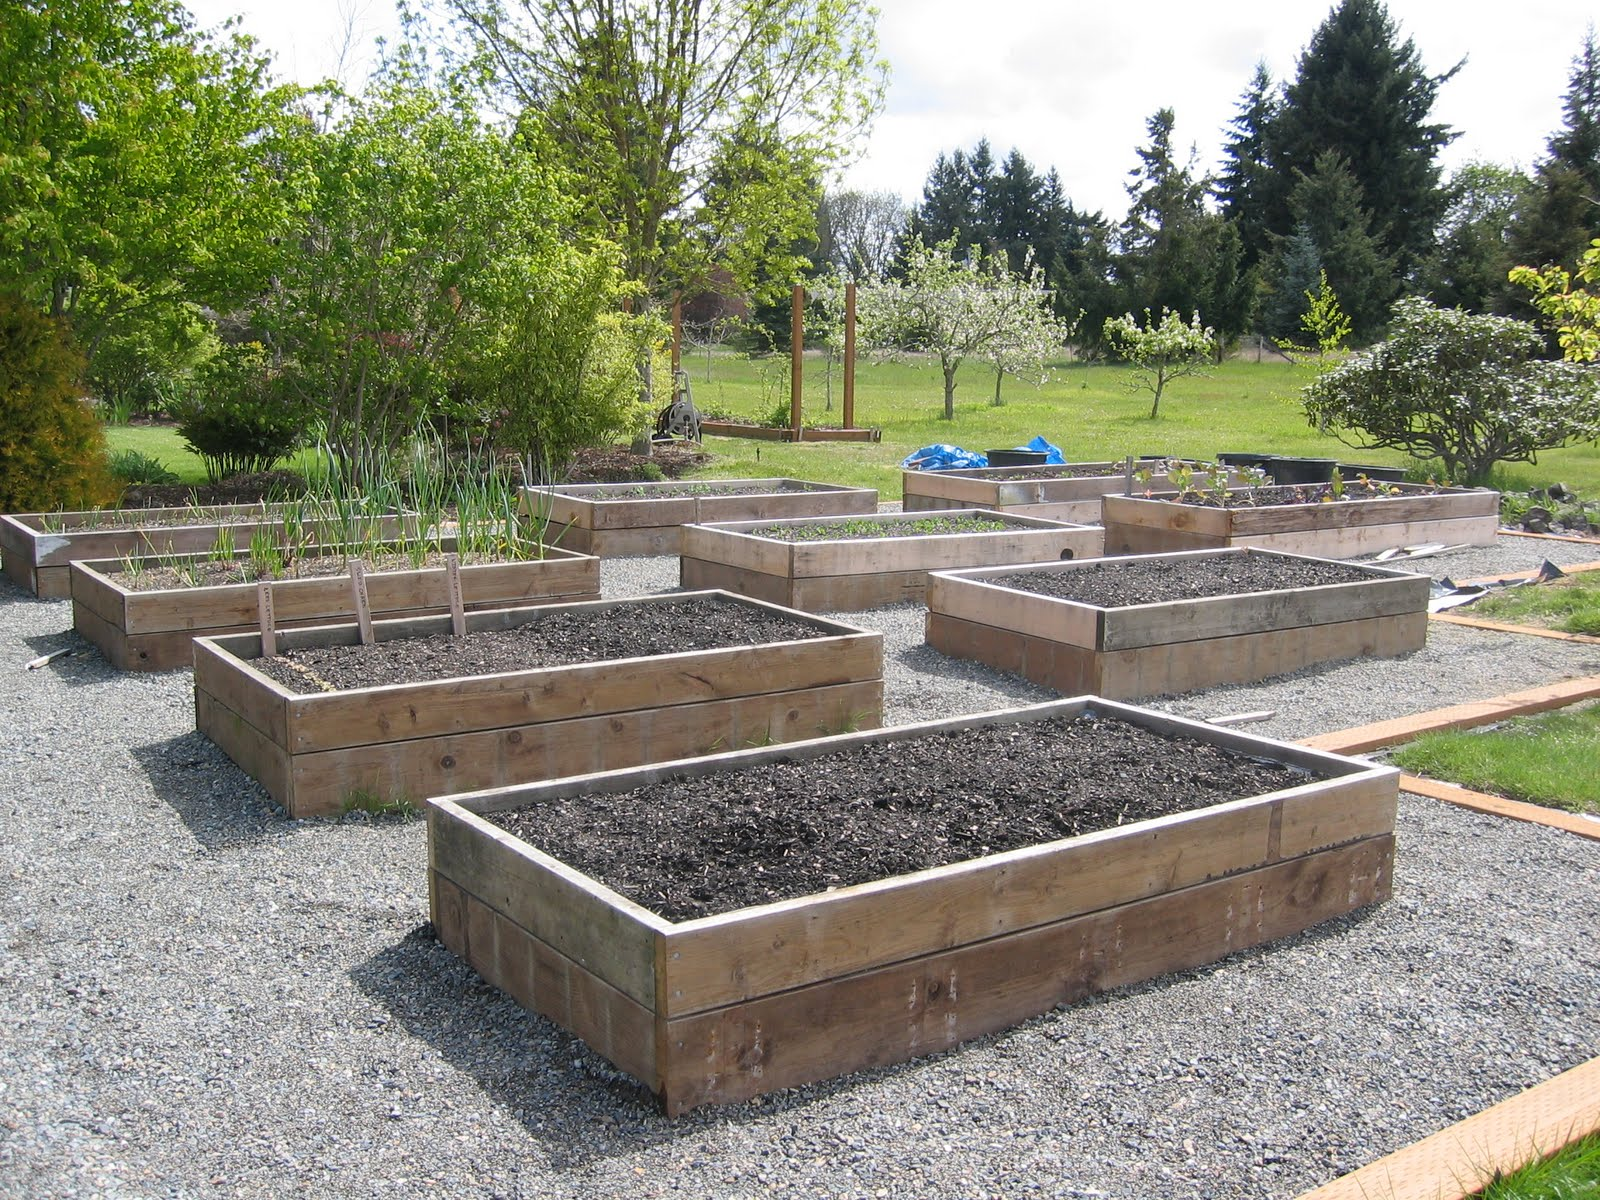 The tacoma kitchen garden journal raised vegetable beds for Raised veggie garden designs